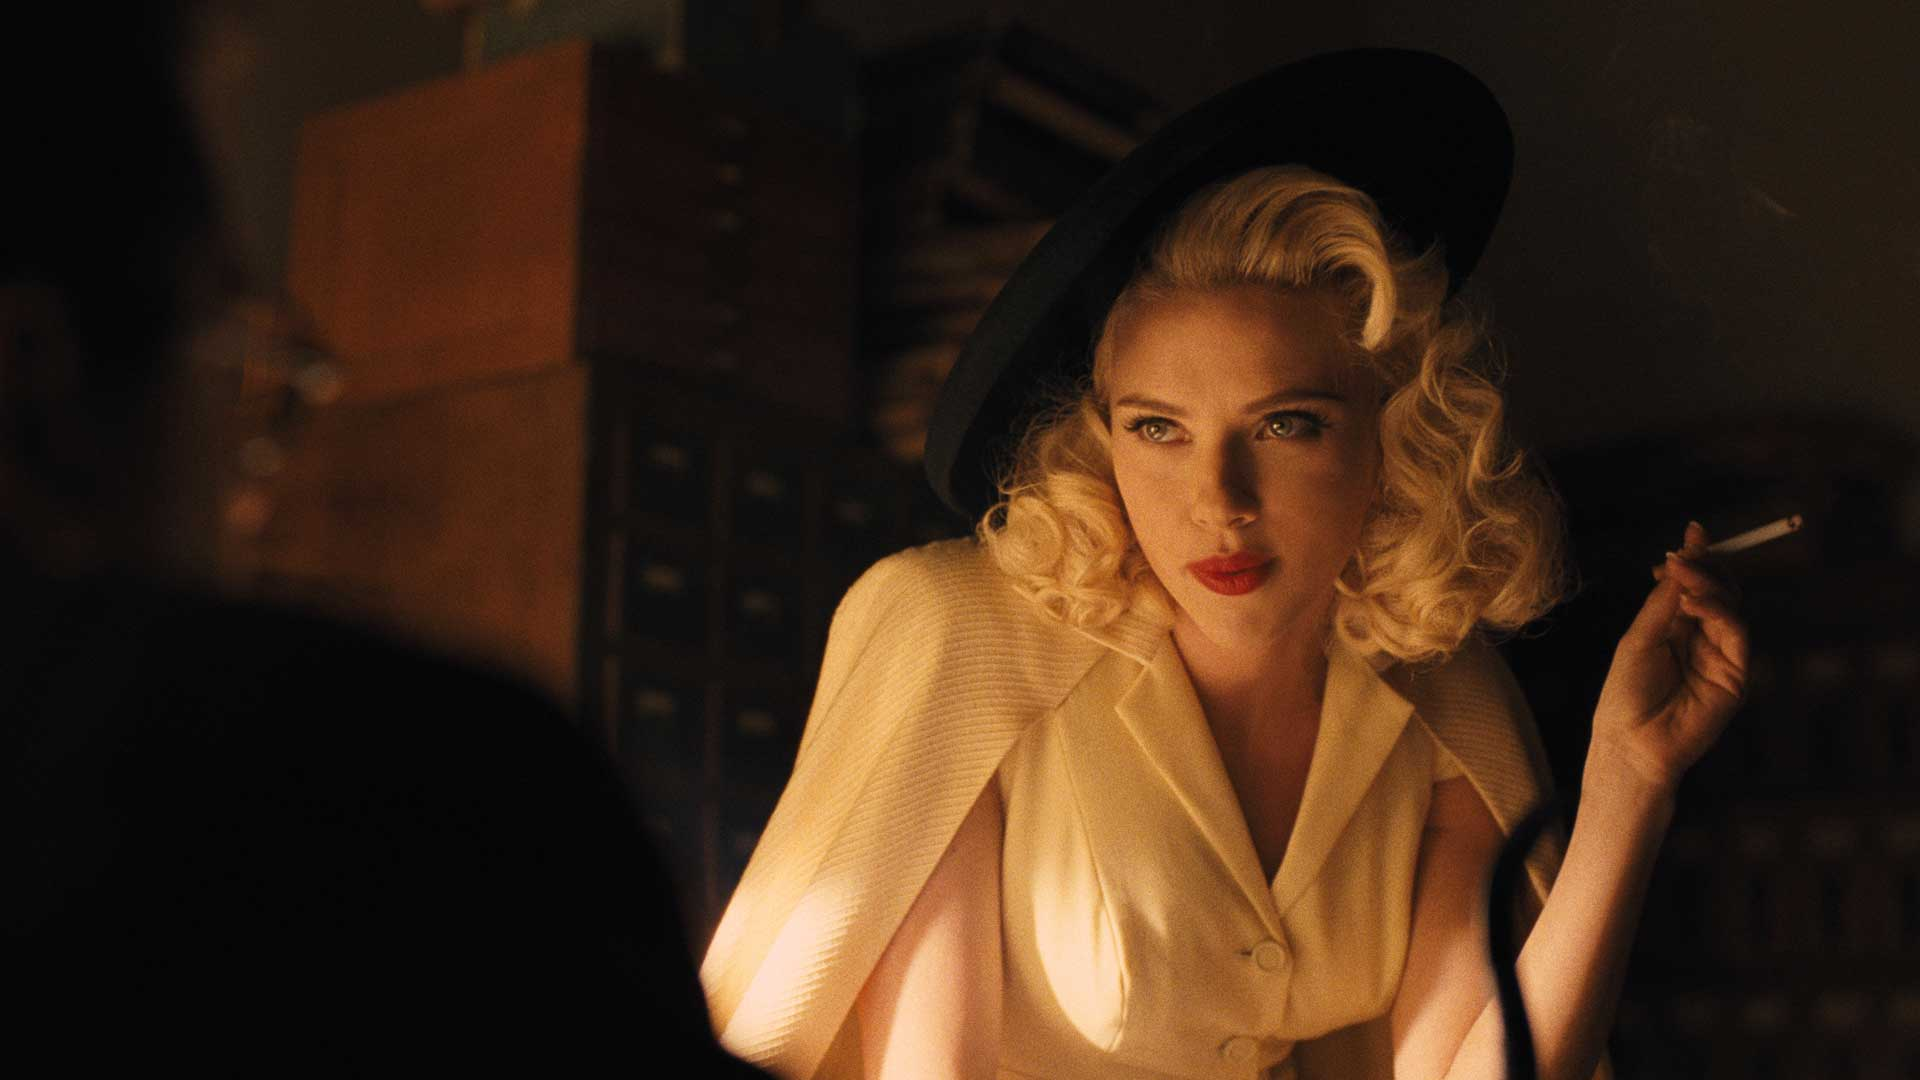 Hail Caesar 1 - Scarlett Johansson Net Worth, Awards, Movies and Private Life, Pictures and Wallpapers